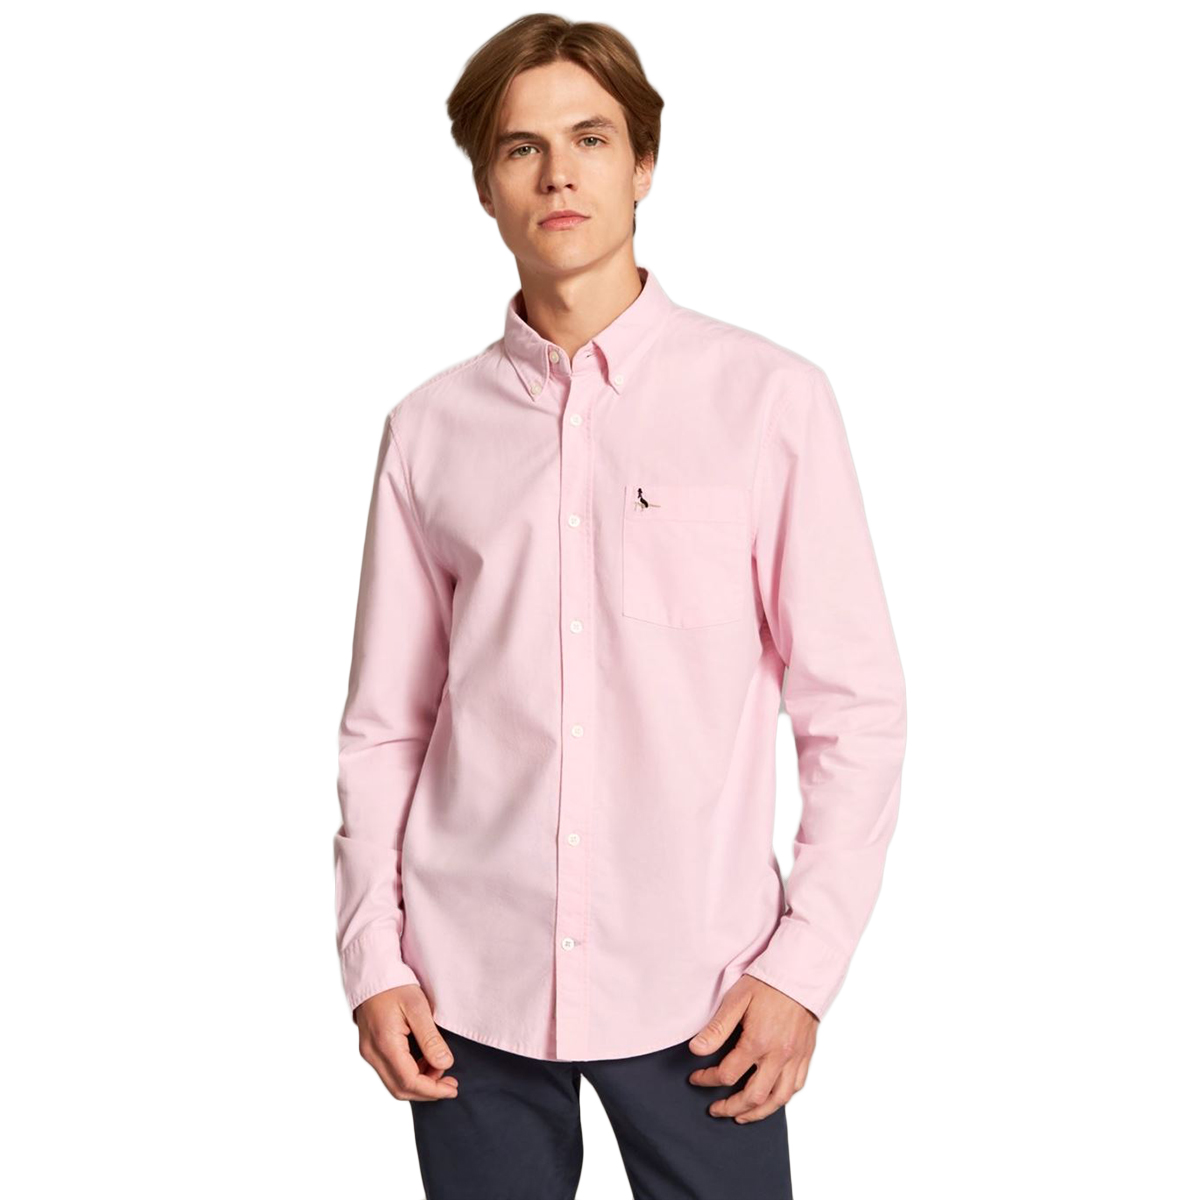 Jack Wills Men's Wadsworth Plain Oxford Shirt - Red, S